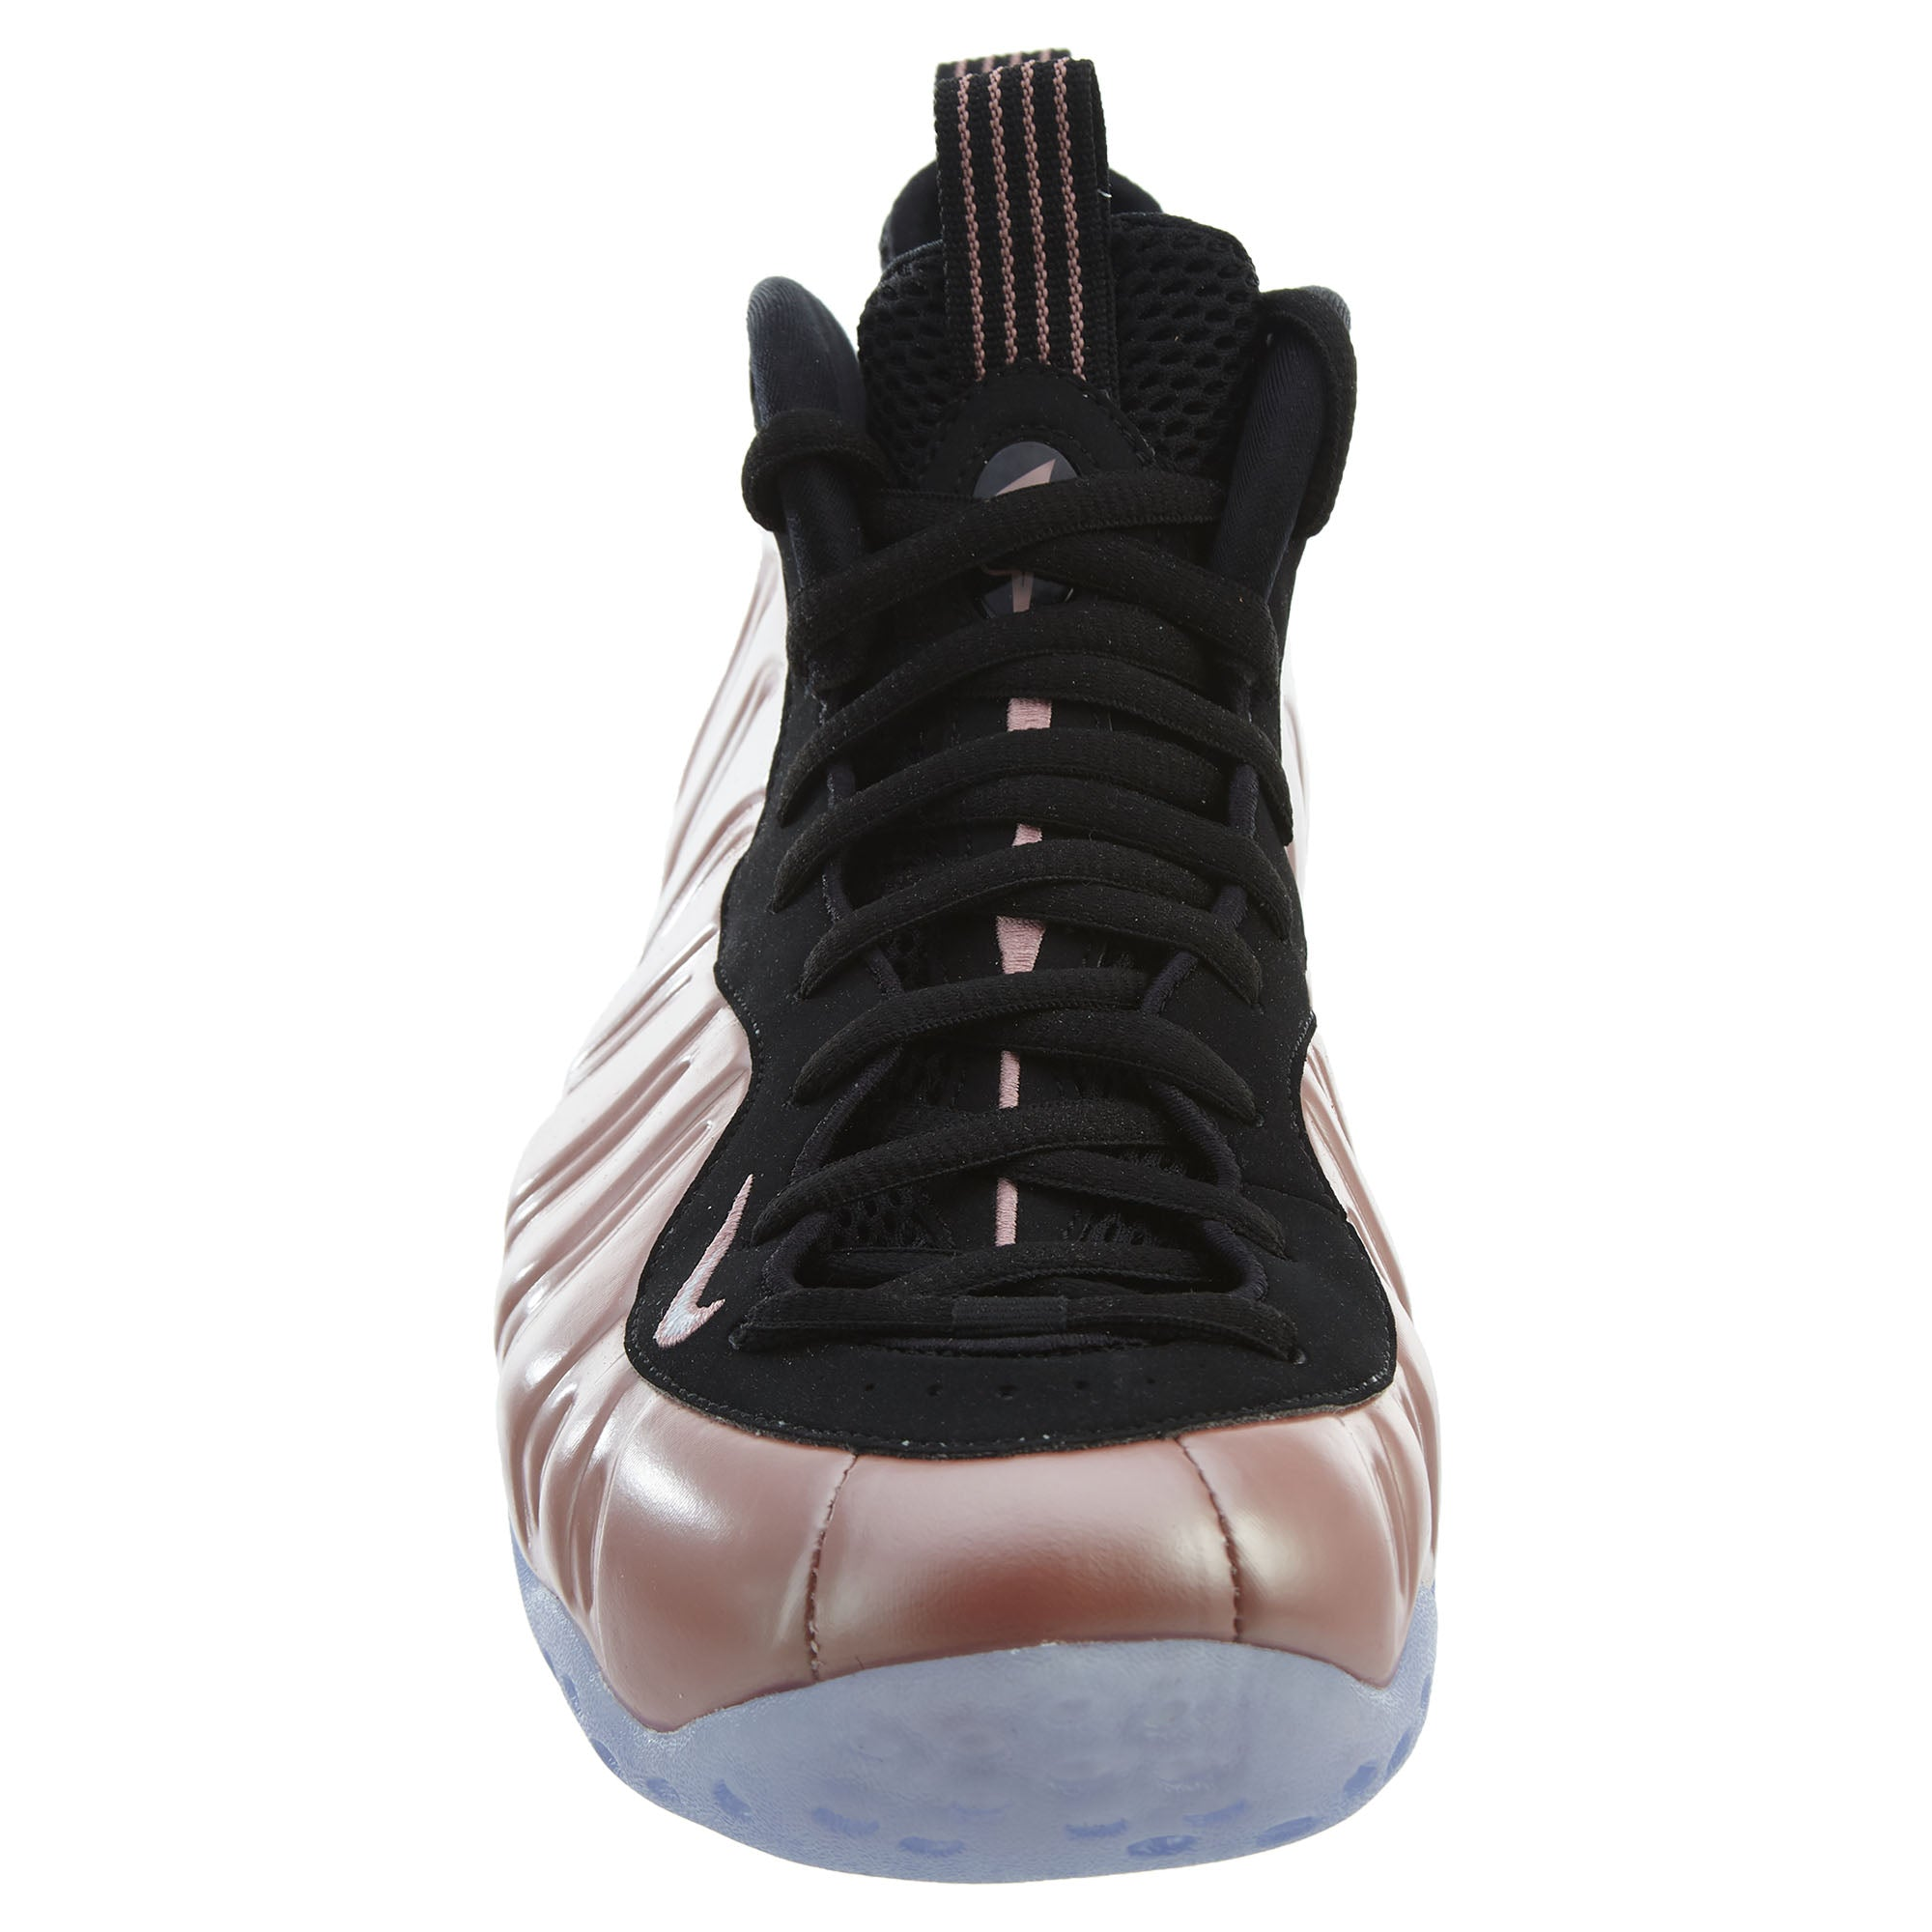 online retailer 0255e e4009 Nike Air Foamposite One Rust Pink · NIKE   Athletic Shoes   Sneakers